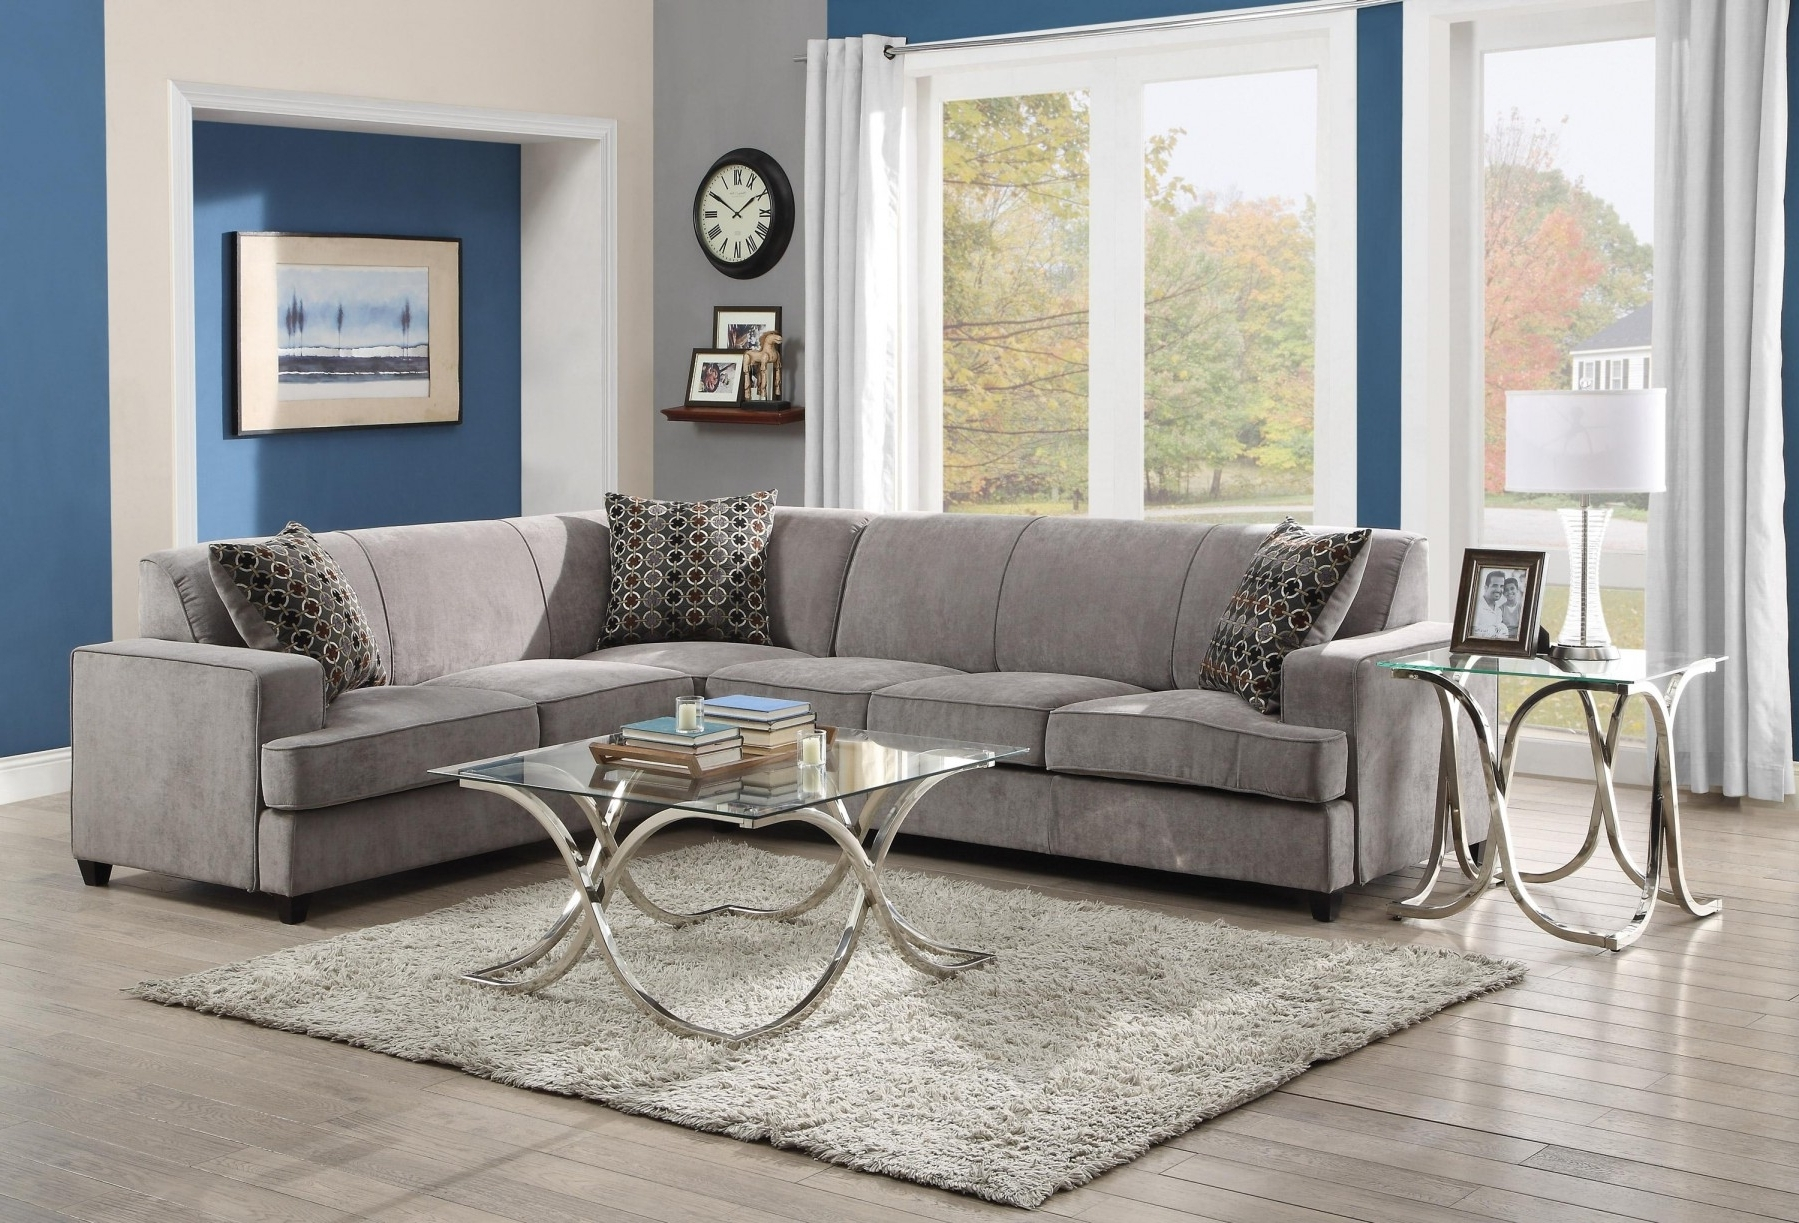 Trendy Long Sectional Sofas Plus Leather L Sofa Together With Designs Or With Regard To Velvet Sectional Sofas With Chaise (View 11 of 15)